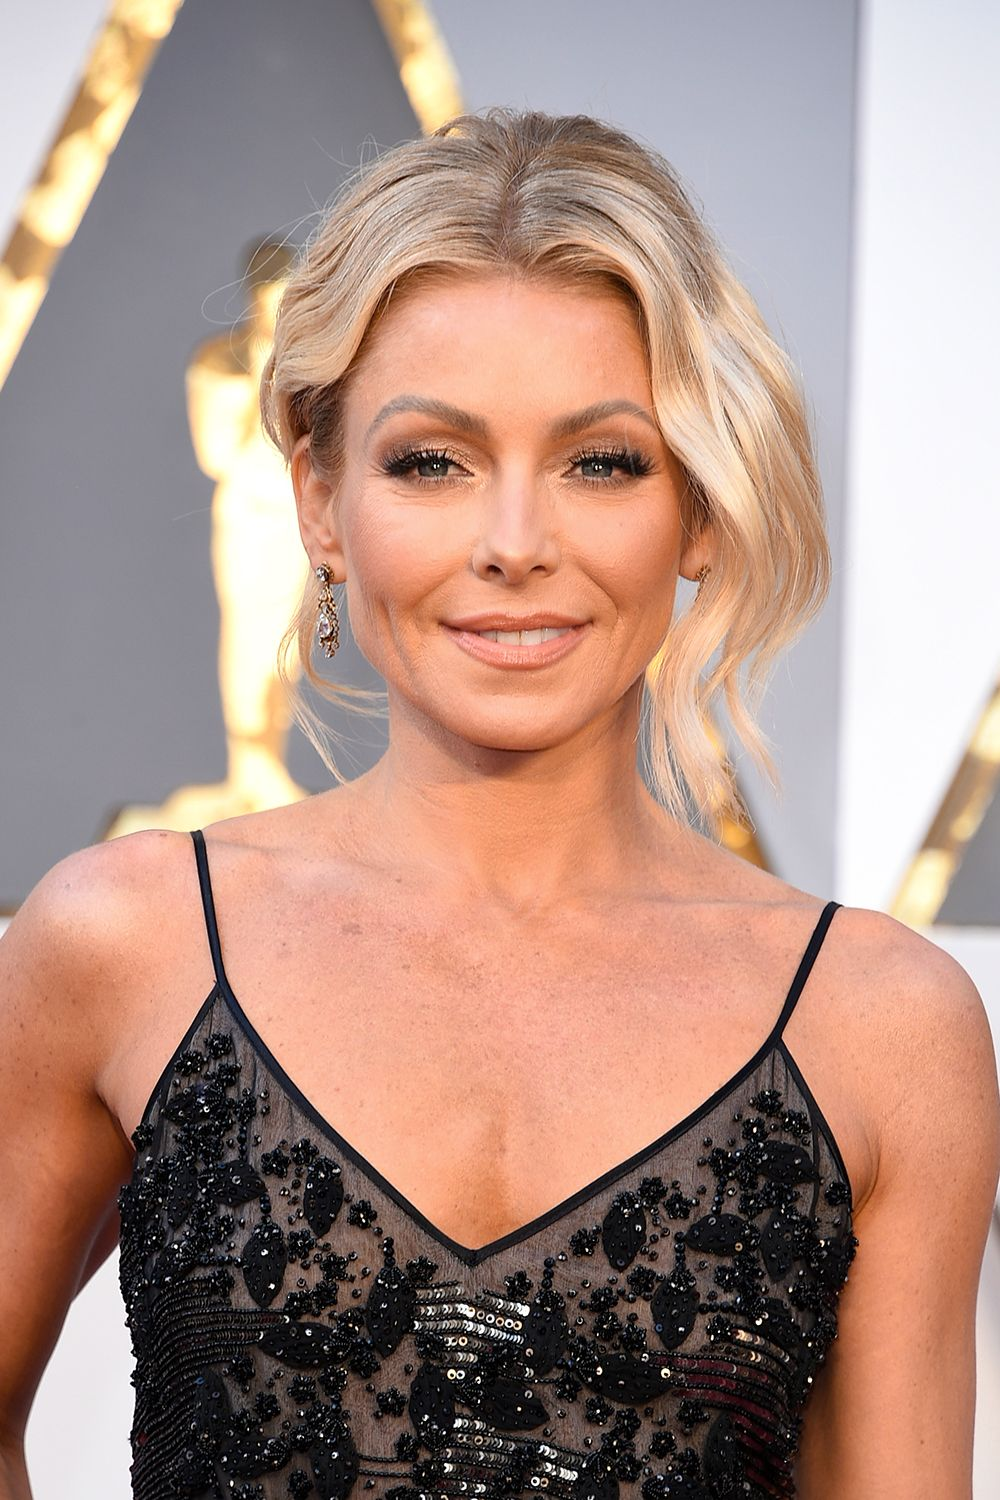 """Kelly Ripa """"I got Botox because people kept saying 'Are you OK' and I'm like, 'I'm fine, why?'"""" she revealed on Live with Kelly and Michael . 'You look like you're angry.'"""